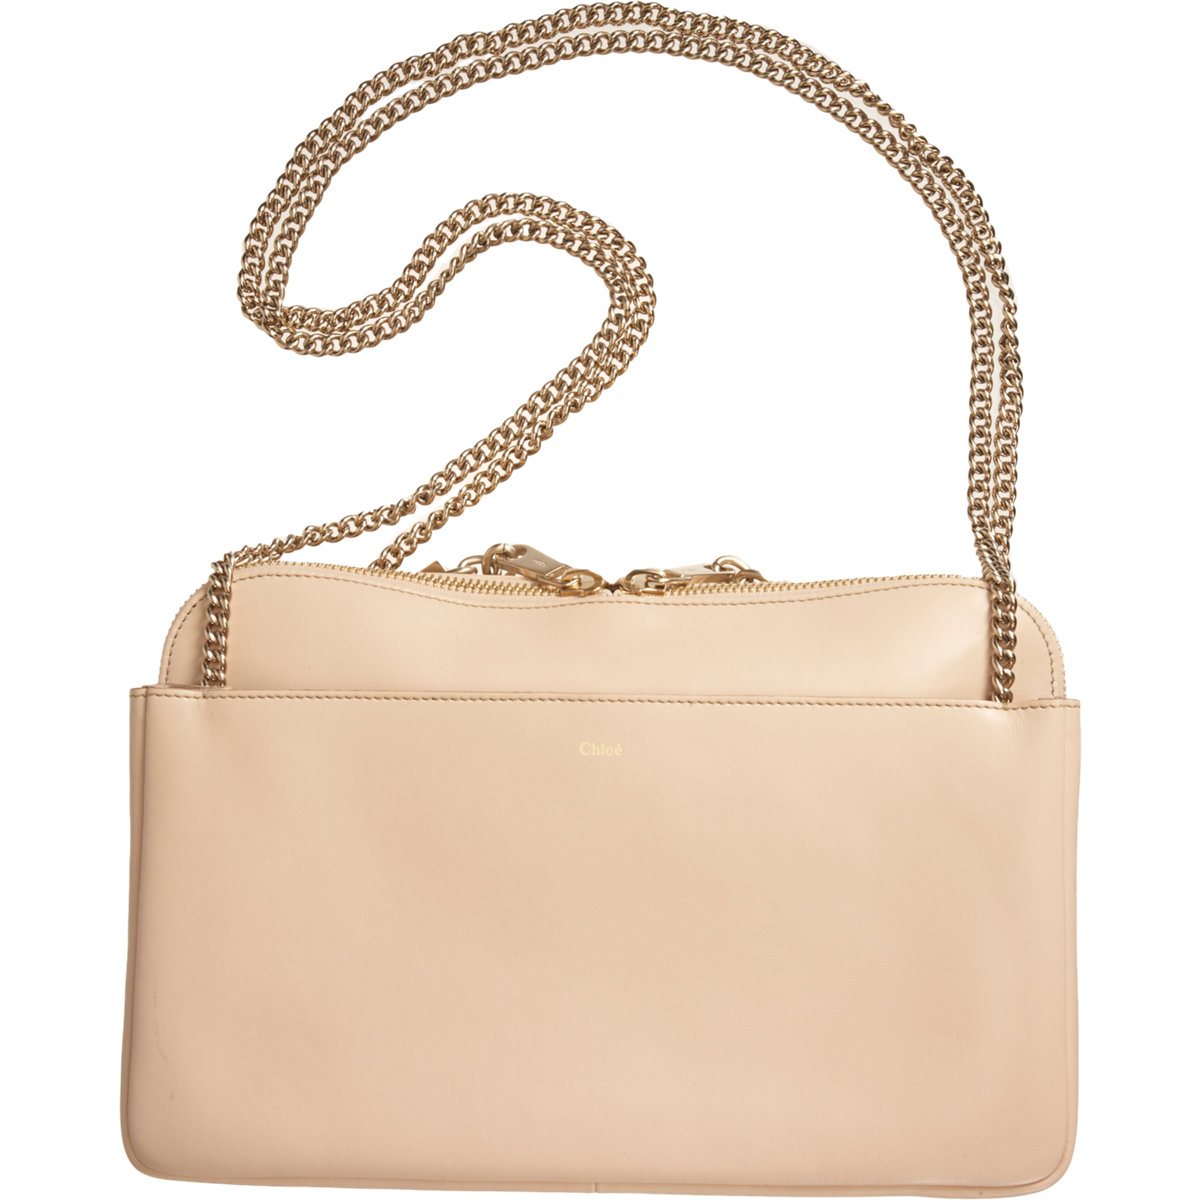 ea81c6bcf7fc Chloé Lucy Zip Bag in Natural - Lyst